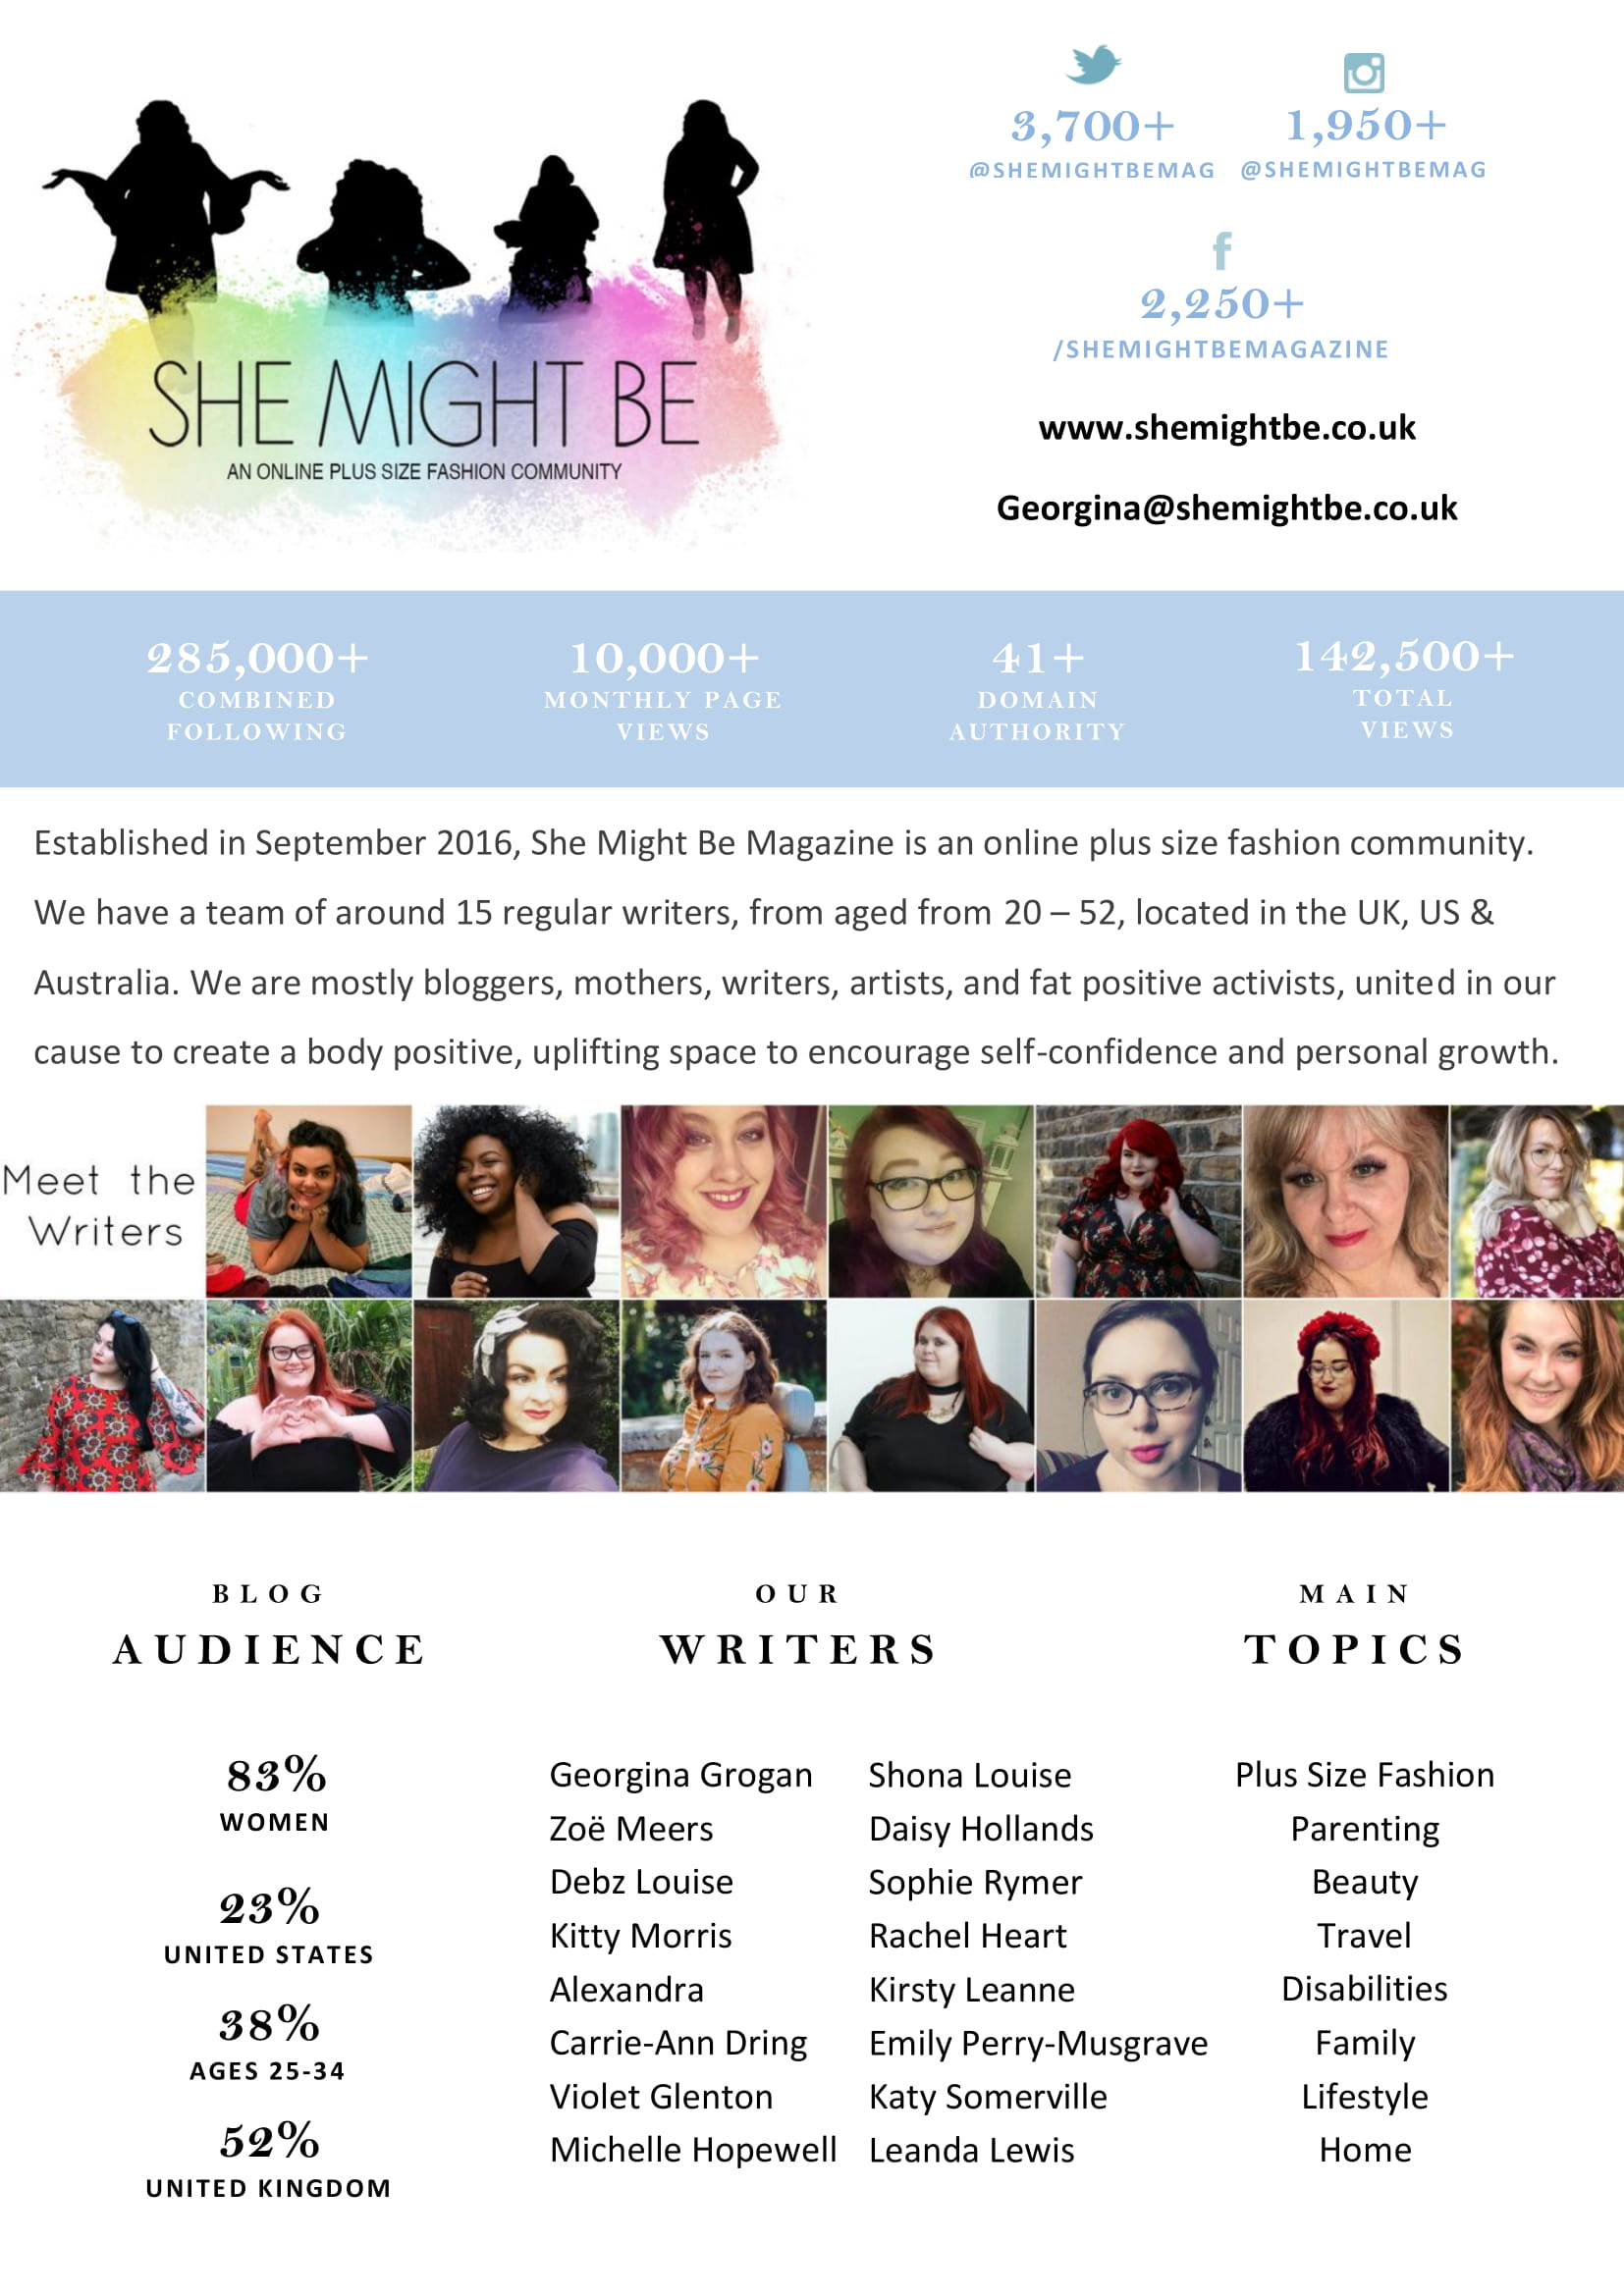 Media Kit for She Might Be Magazine